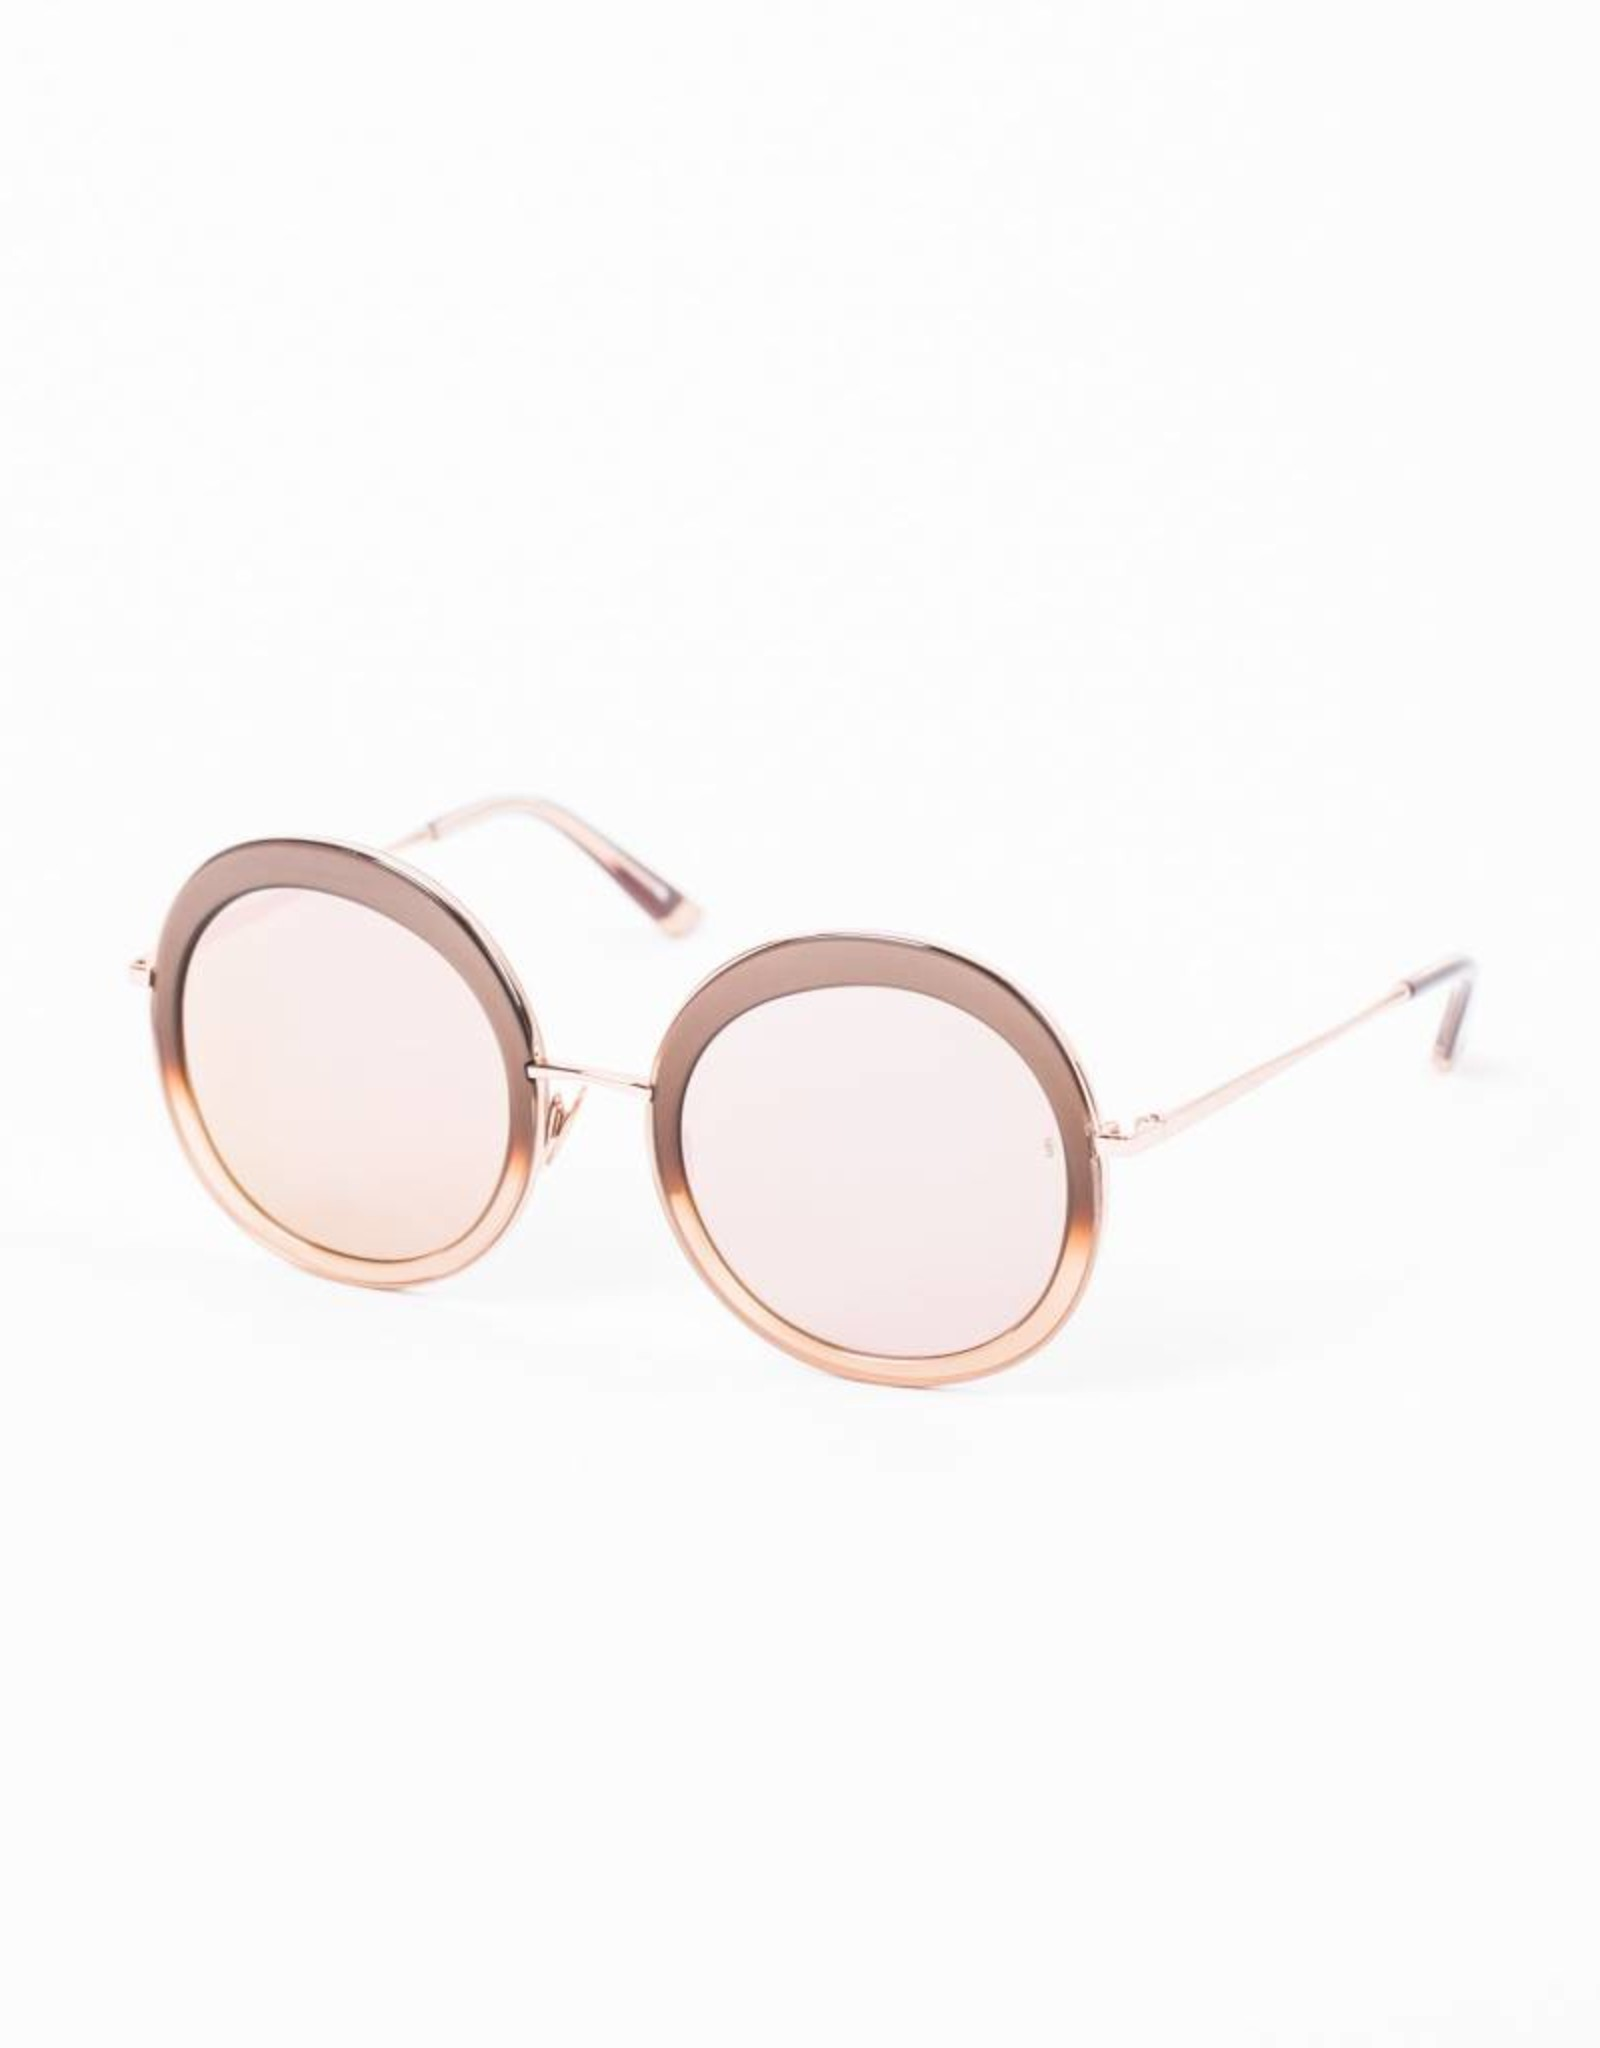 Sunday Somewhere Copper Abella Sunglasses